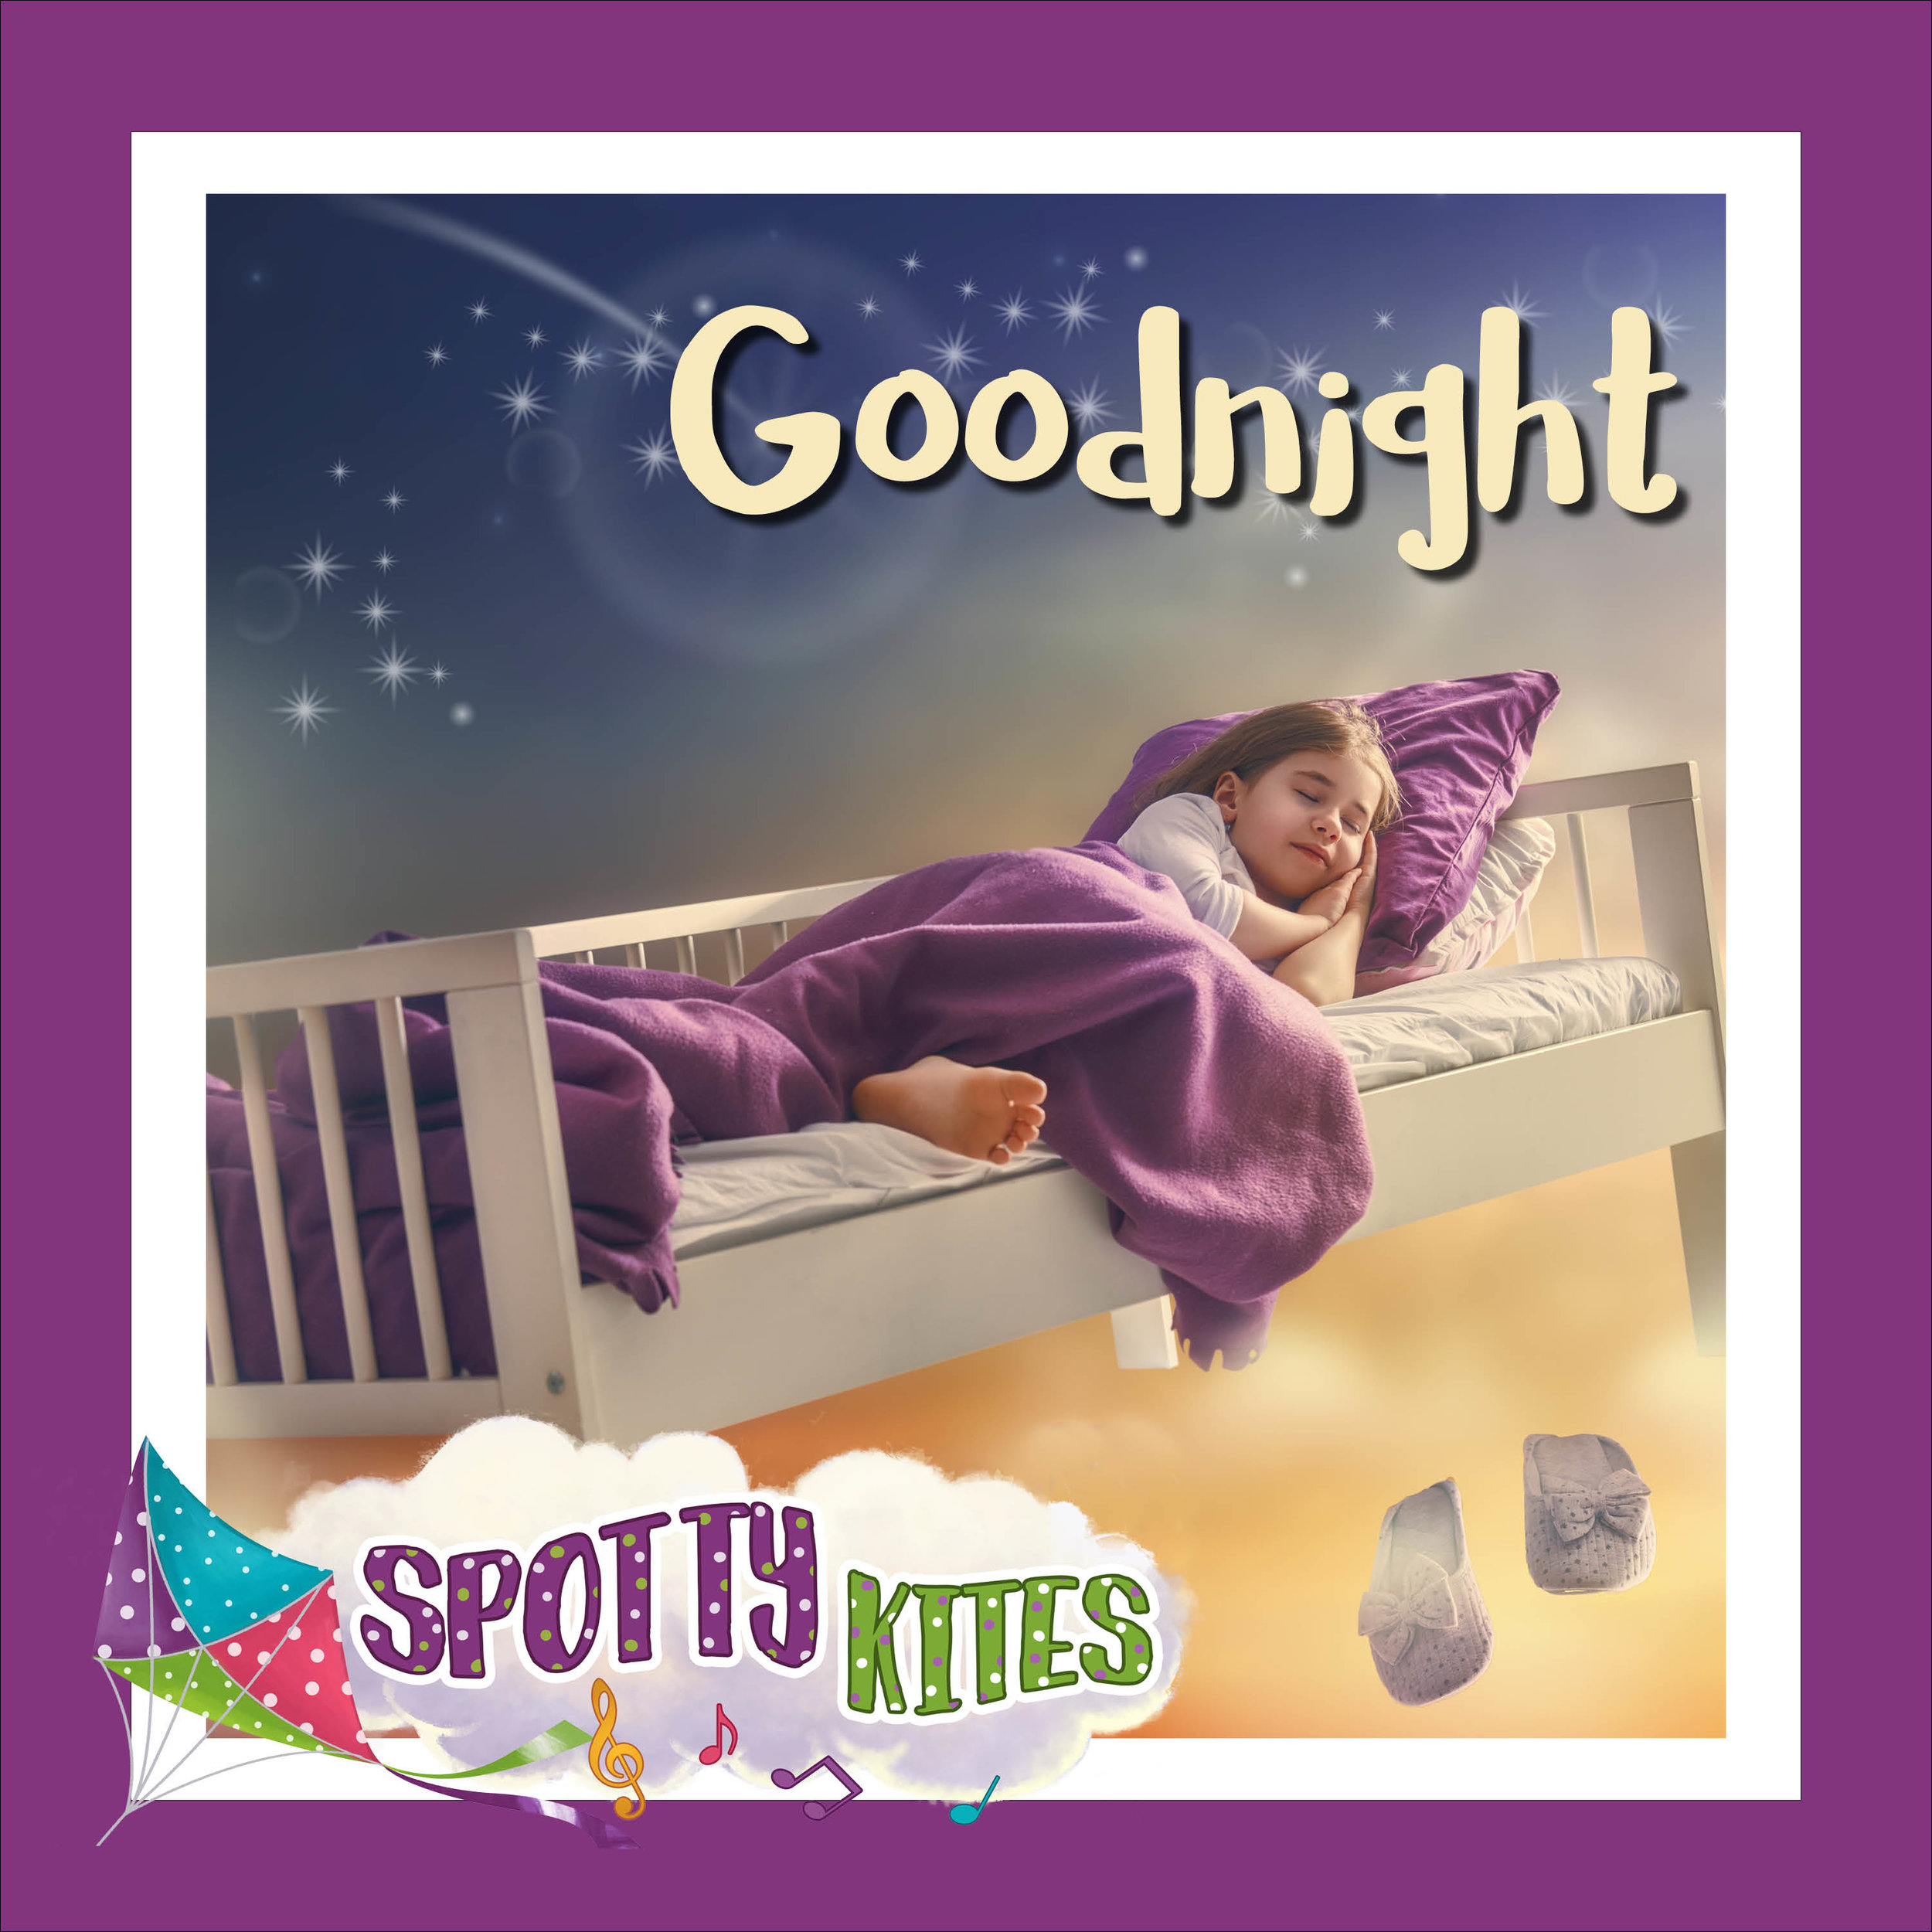 Spotty Kites Goodnight.jpg